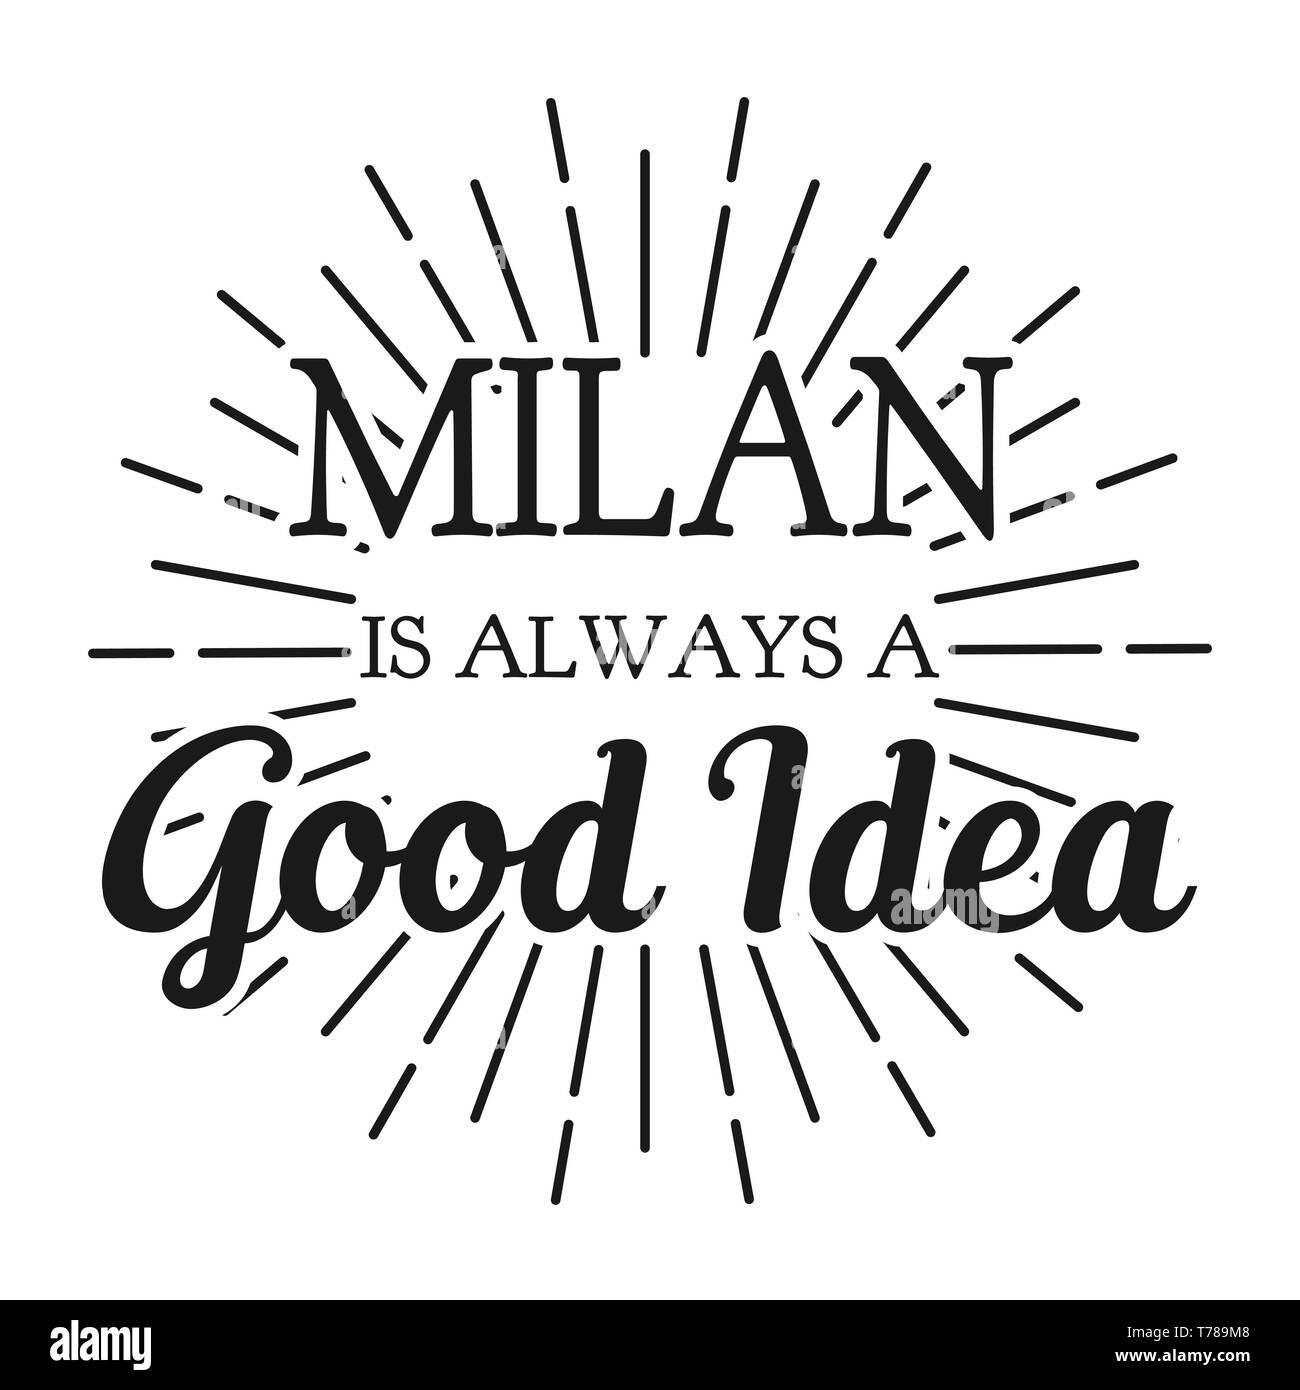 Milan is always a Good Idea. Square frame banner. Vector illustration. - Stock Vector